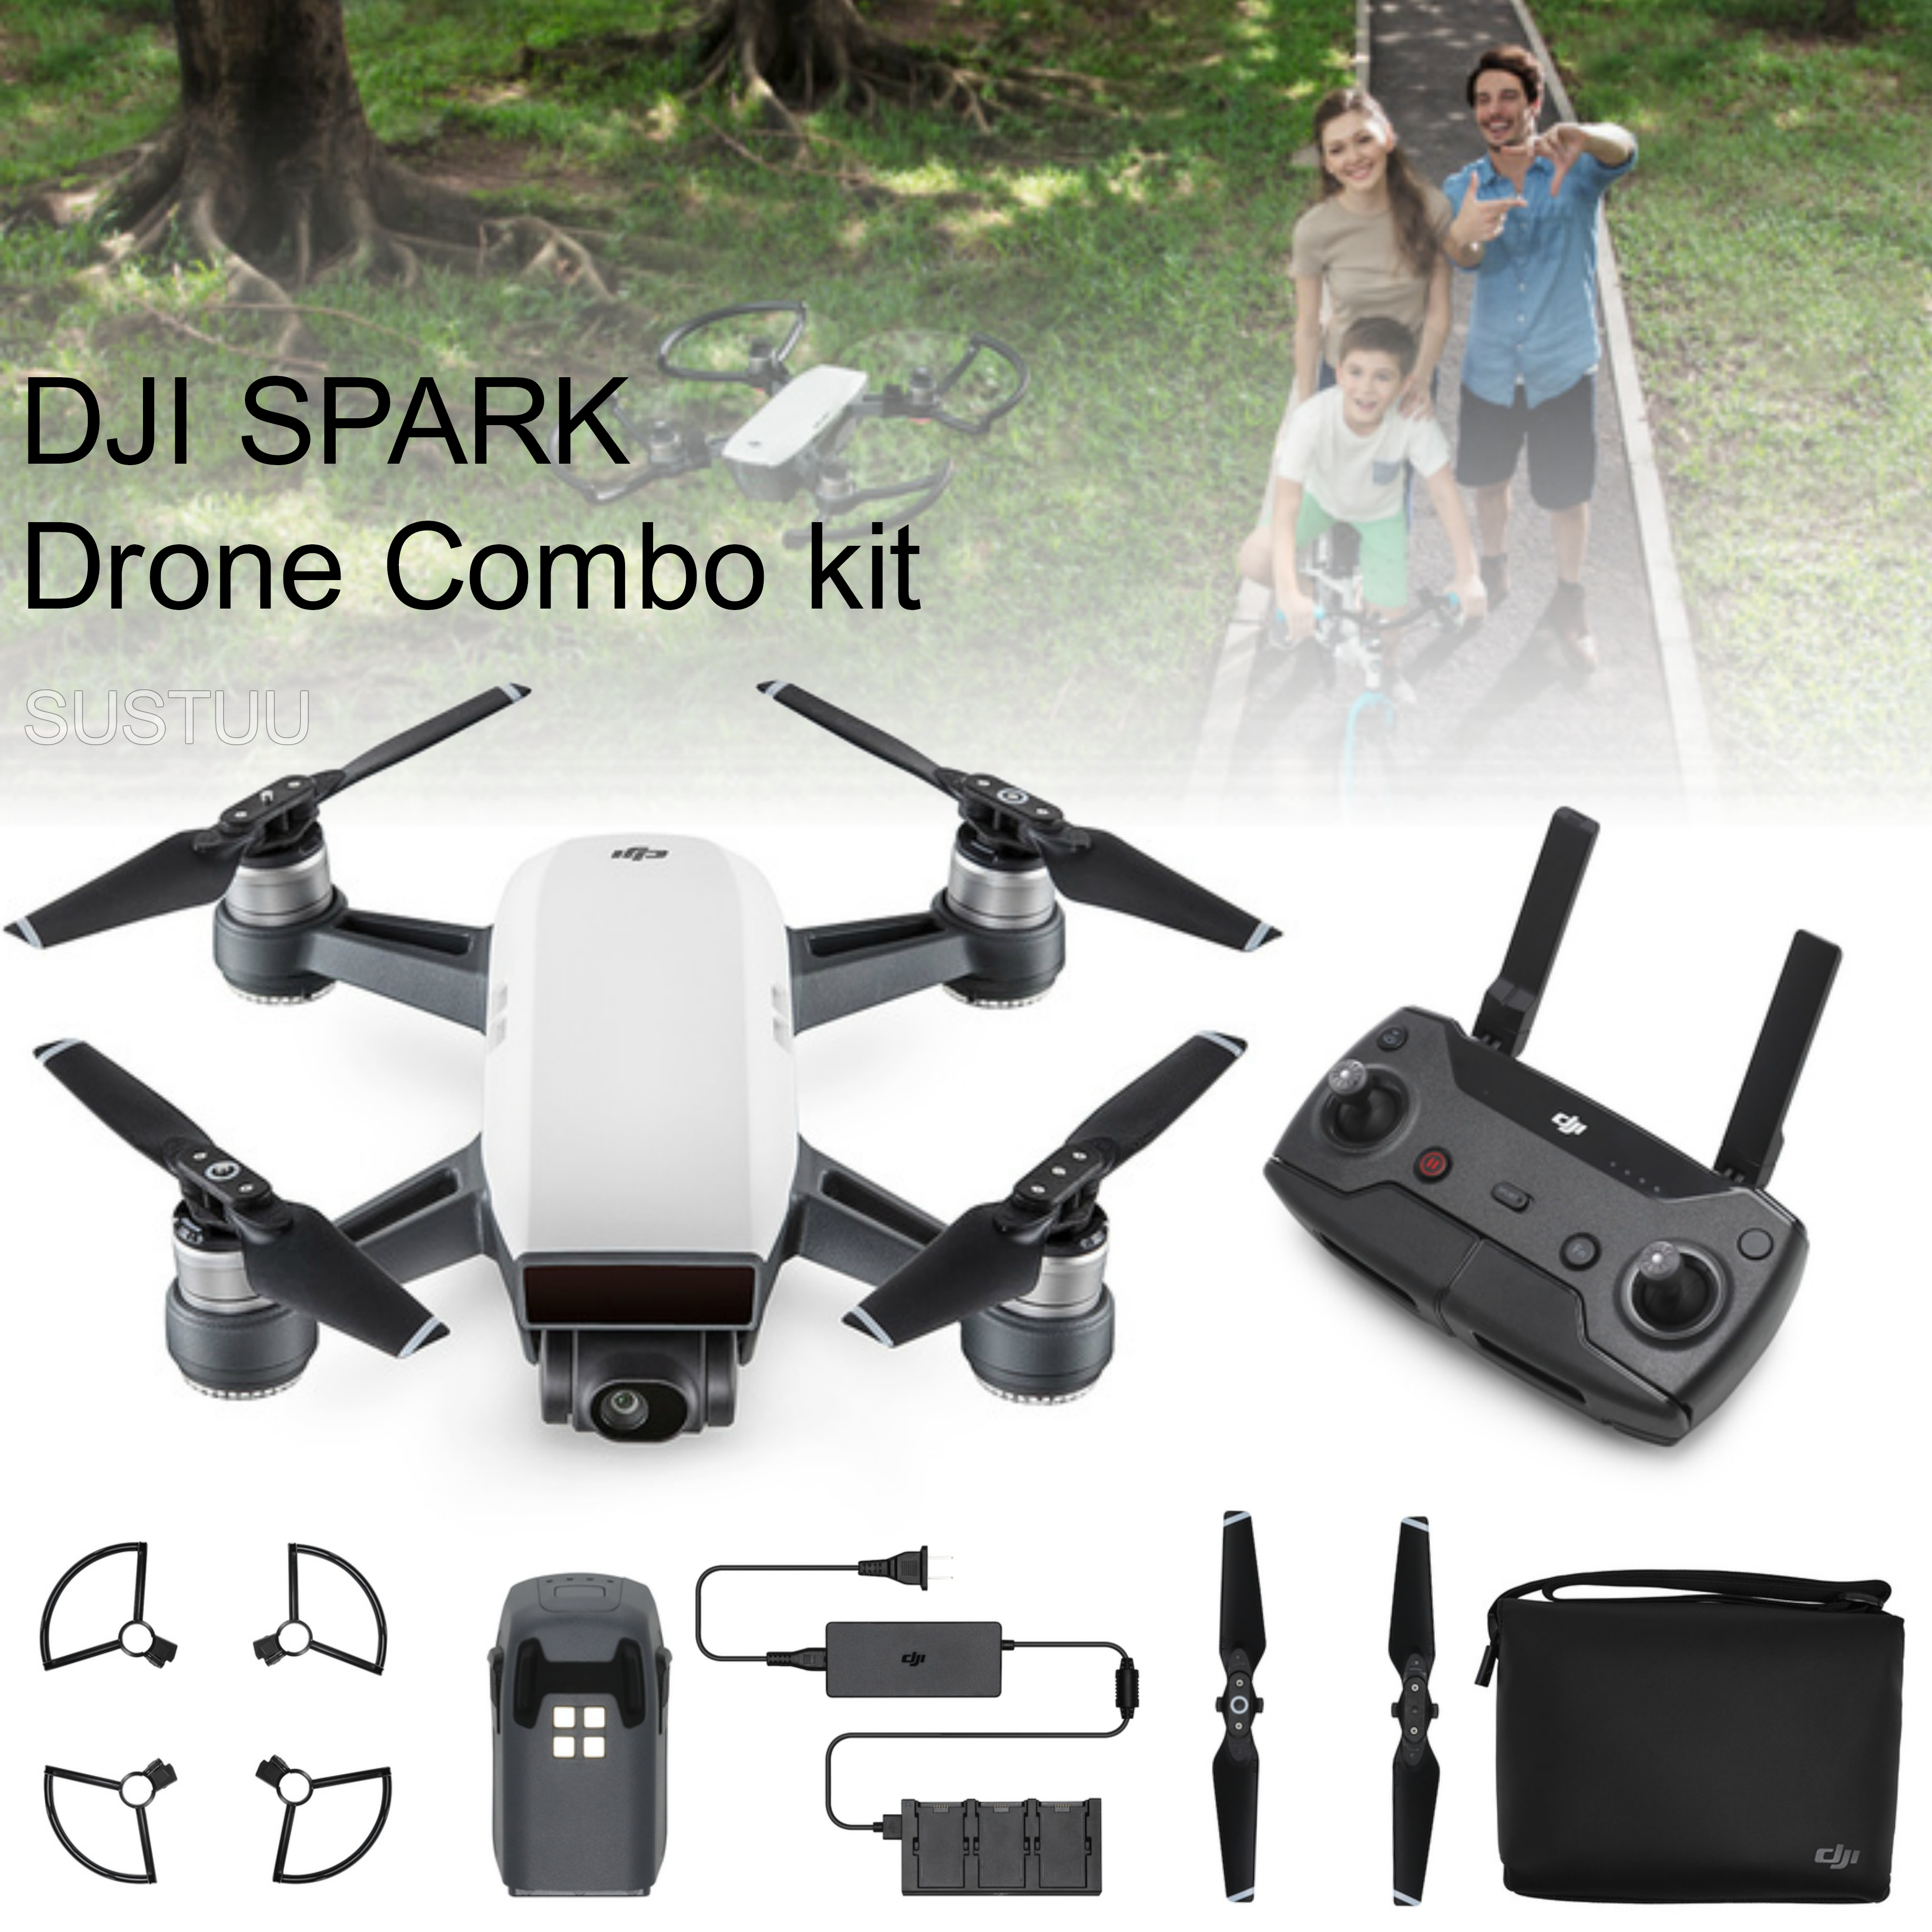 DJI SPARK Fly More Camera Drone Combo Kit|12MP|HD 1080p|CP.PT.000904|Alpine White